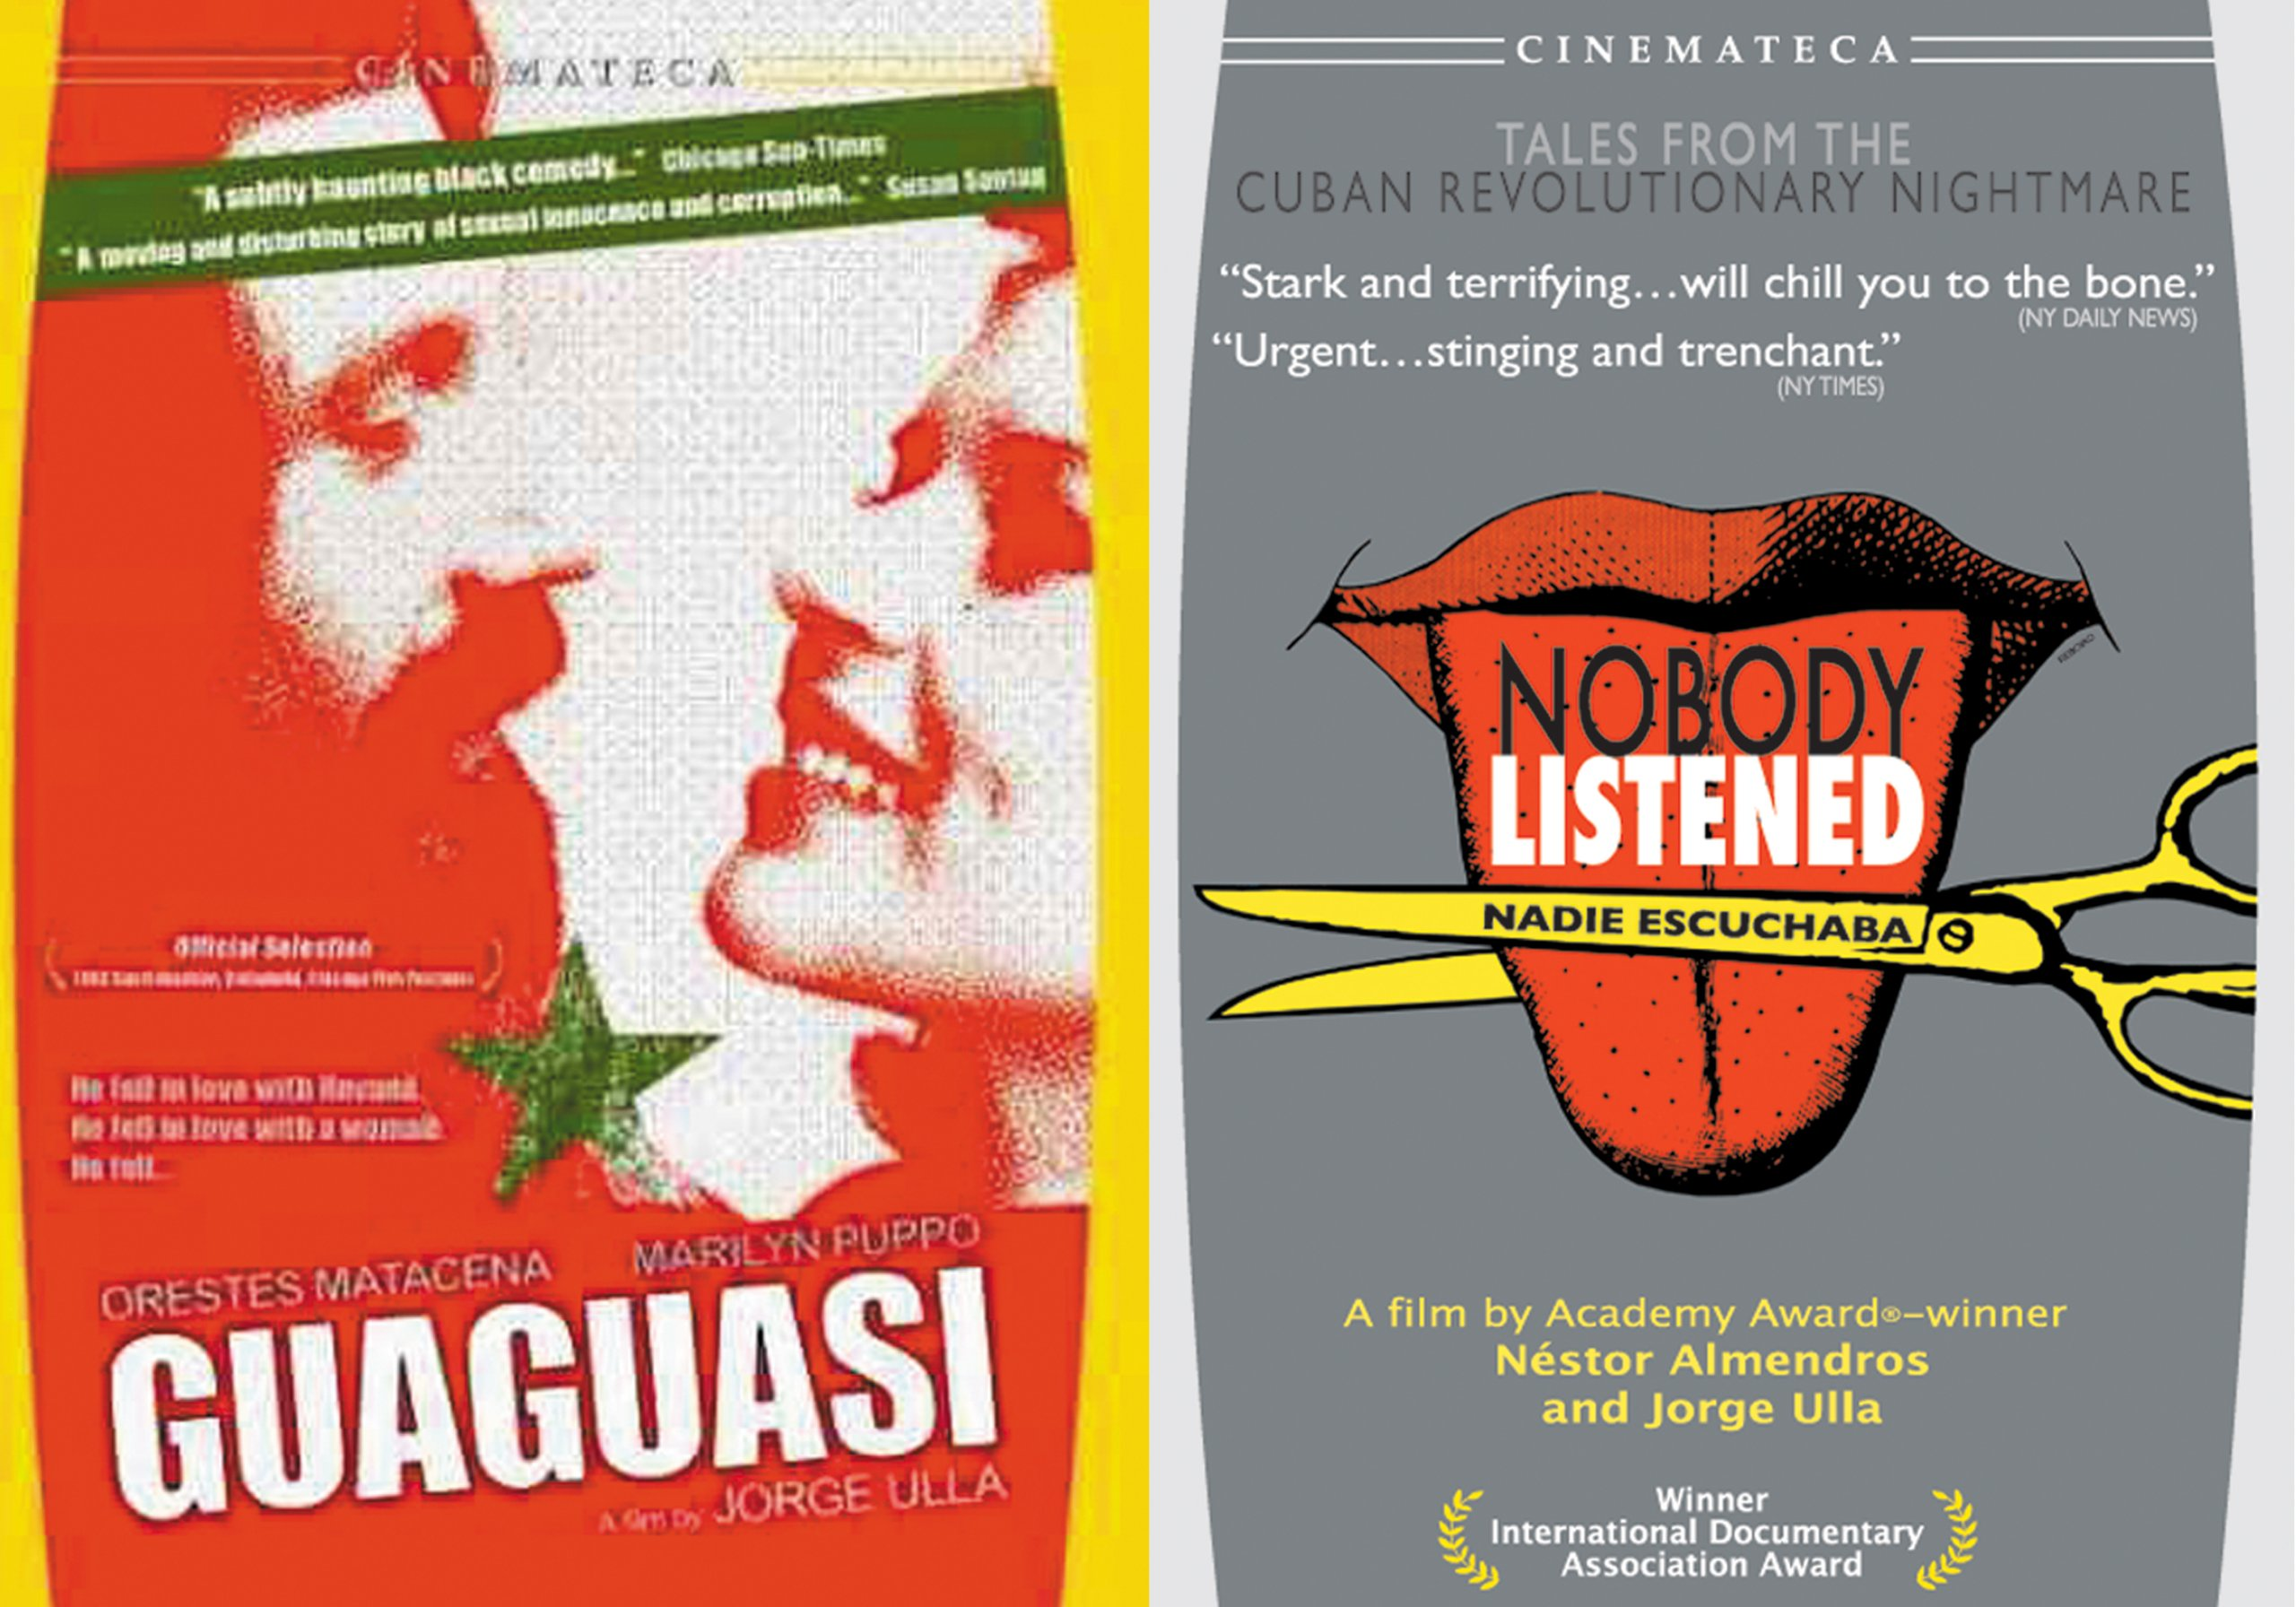 DVD : Cuban Revolution: Guaguasi / Nobody Listened (Full Frame, Subtitled, 2PC)